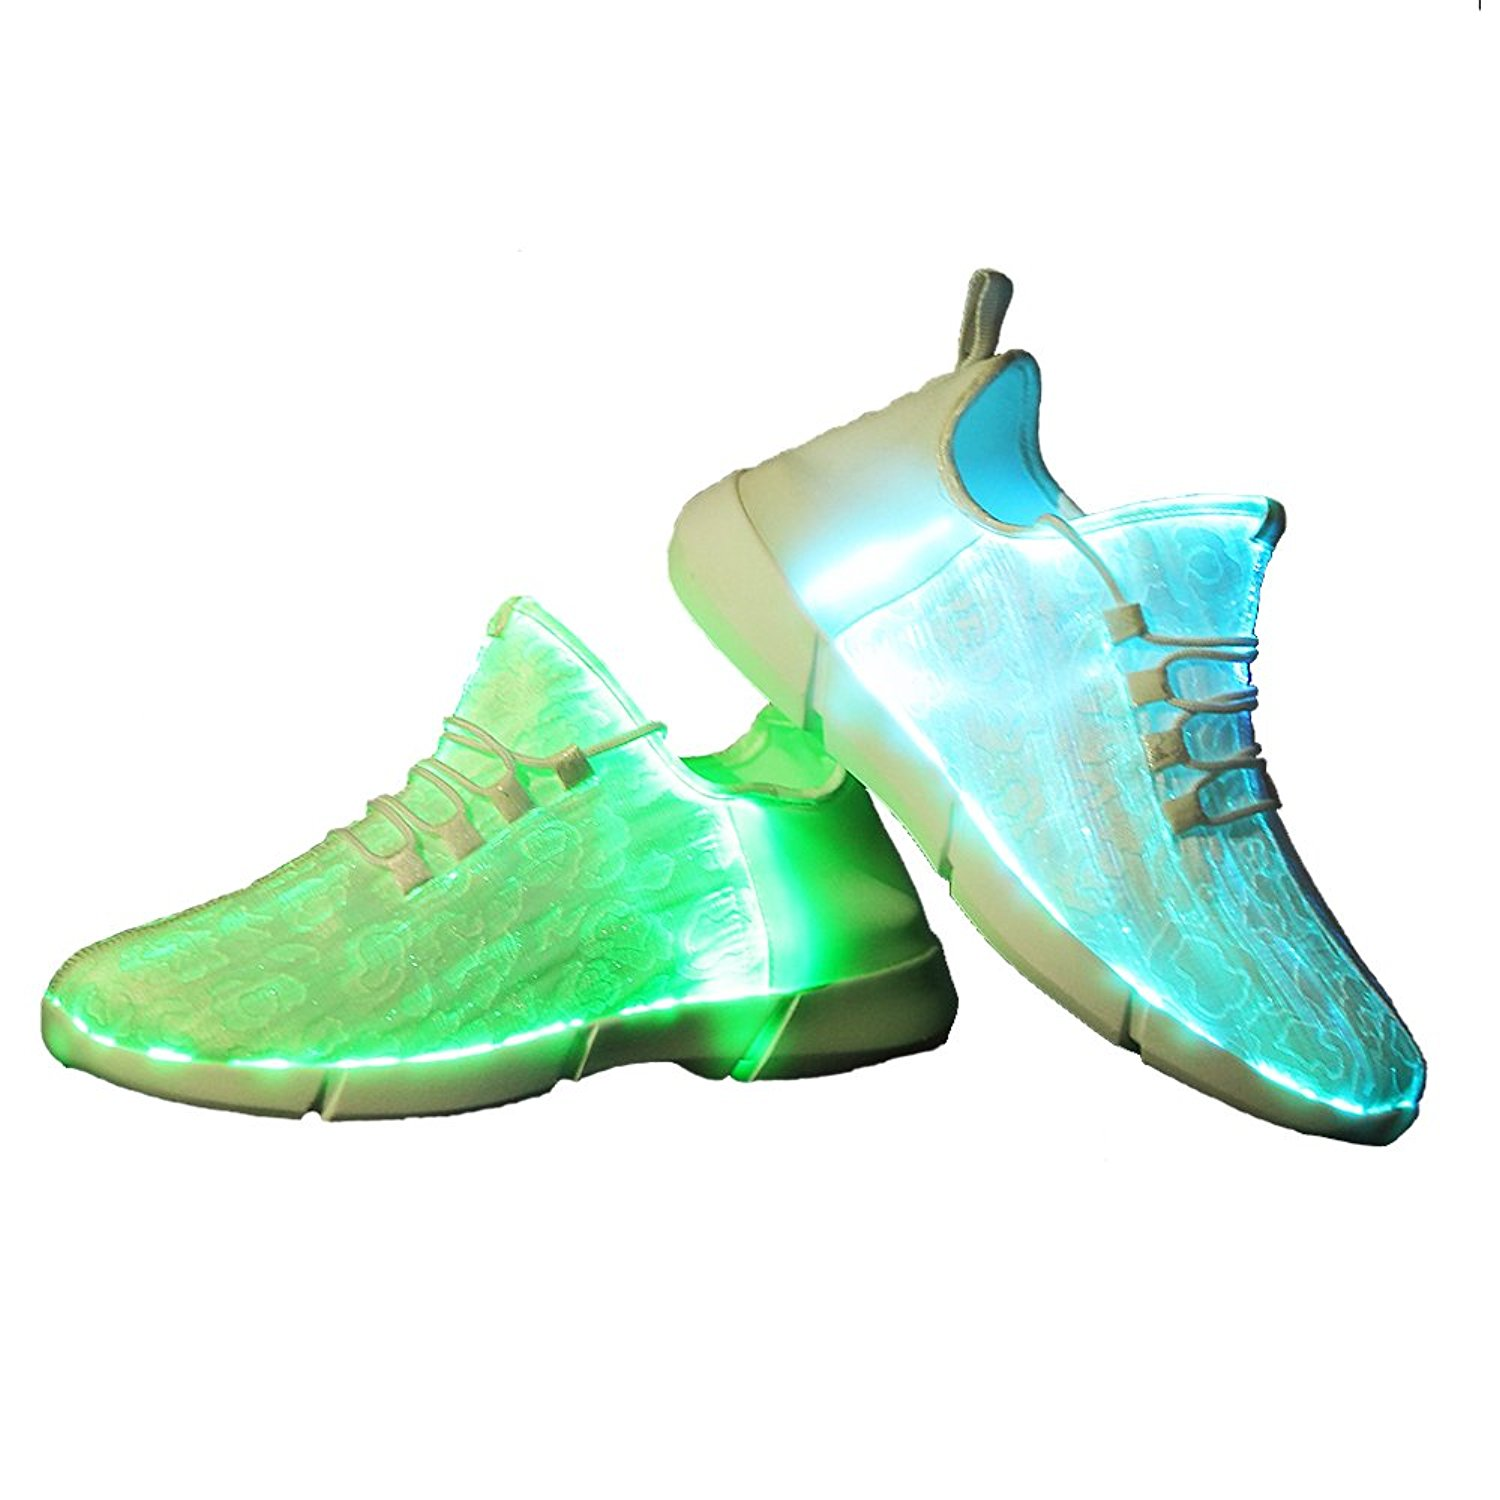 Luminous Fiber Optic Fabric Light Up Shoes 11 Colors Flashing  White Teenager Girls&Boys USB Rechargeable Sneakers with Light joyyou brand usb children boys girls glowing luminous sneakers with light up led teenage kids shoes illuminate school footwear